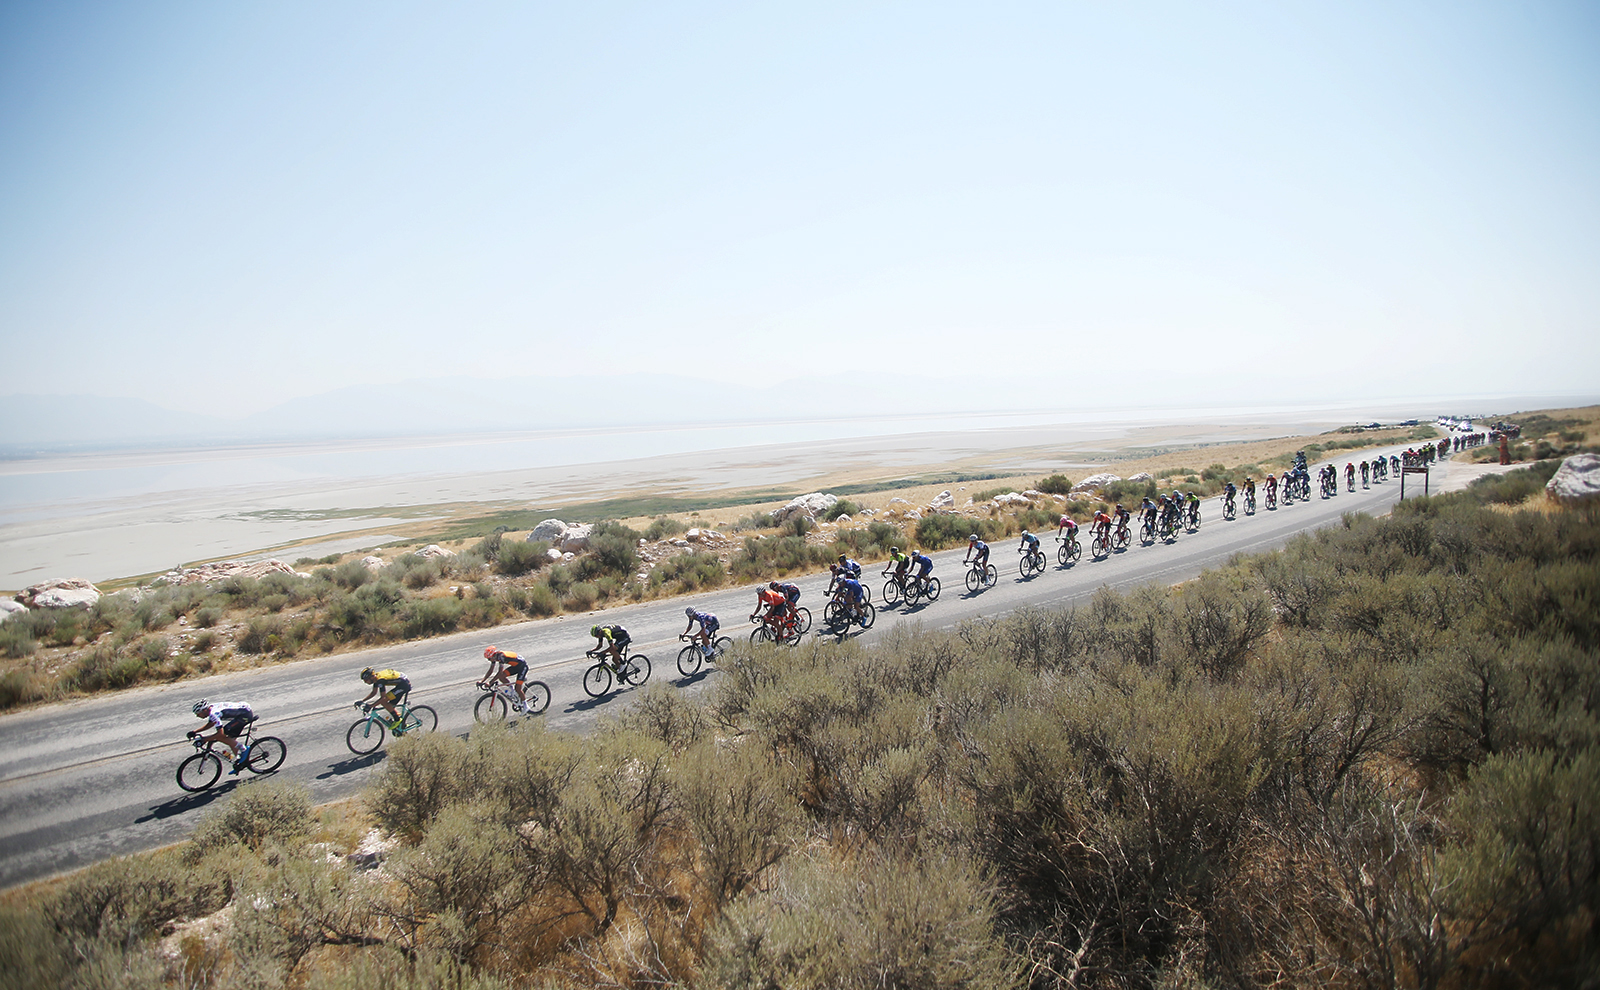 Tour of Utah, Stage 3 started on Antelope Island. 2018 Tour of Utah Stage 3, August 8, 2018, Layton, Utah. Photo by Cathy Fegan-Kim, cottonsoxphotography.net